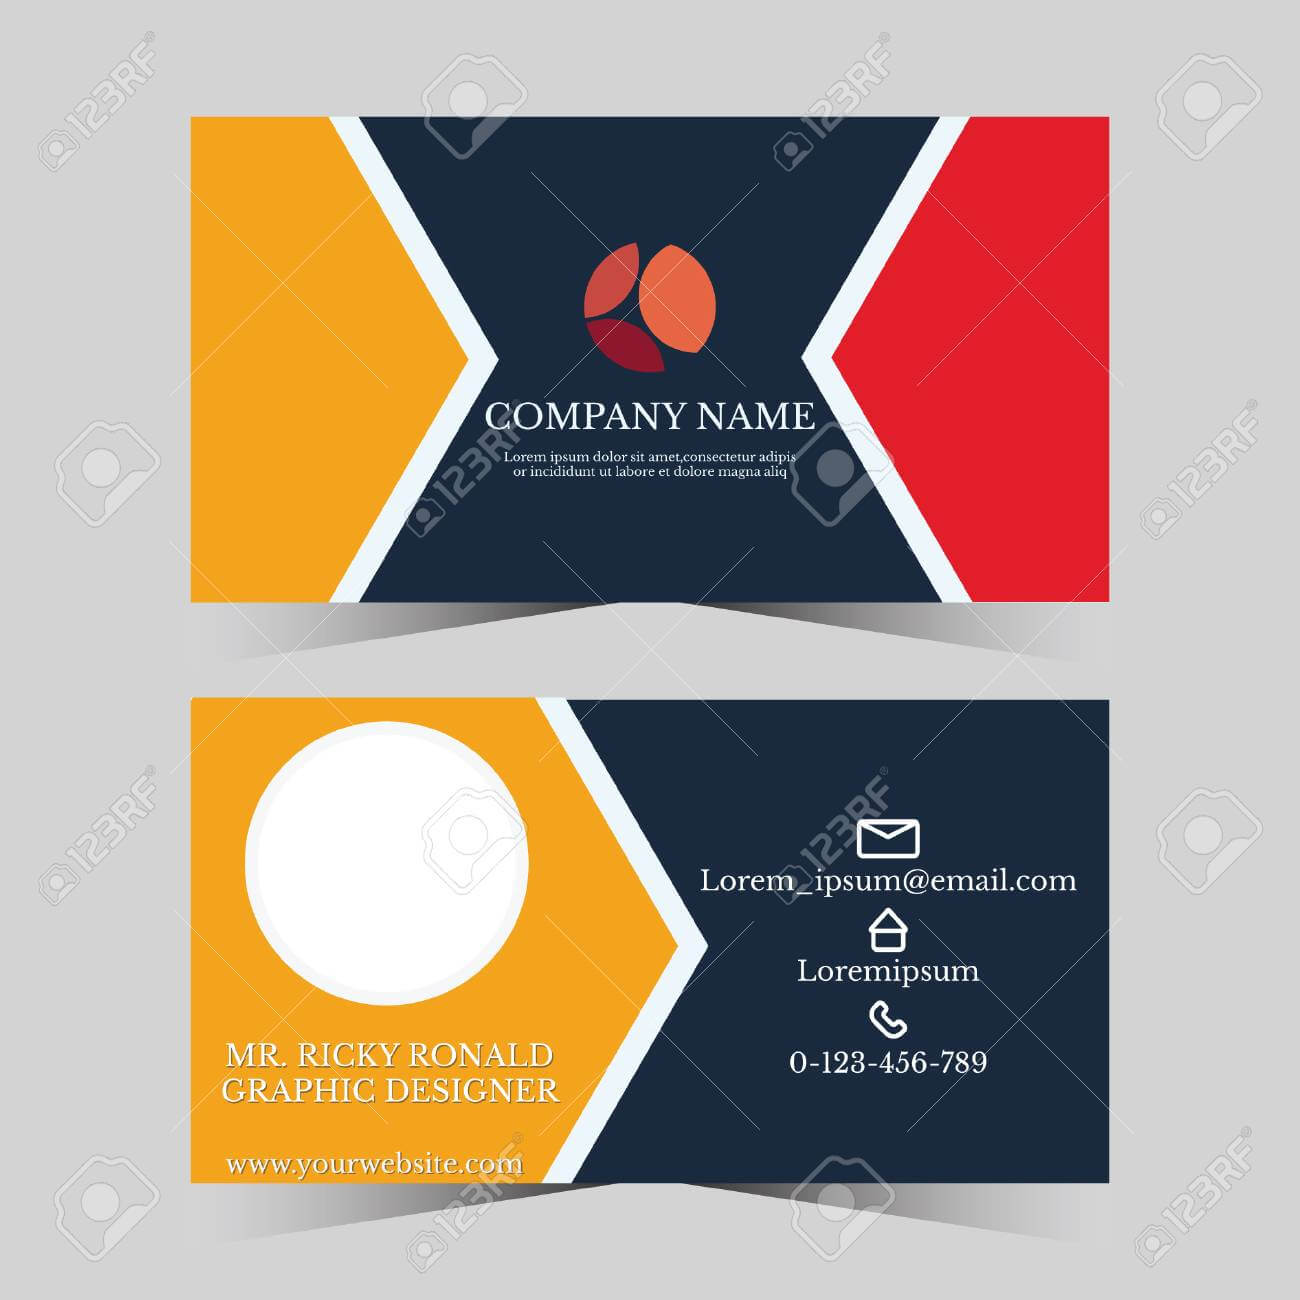 Calling Card Template For Business Man With Geometric Design Within Template For Calling Card